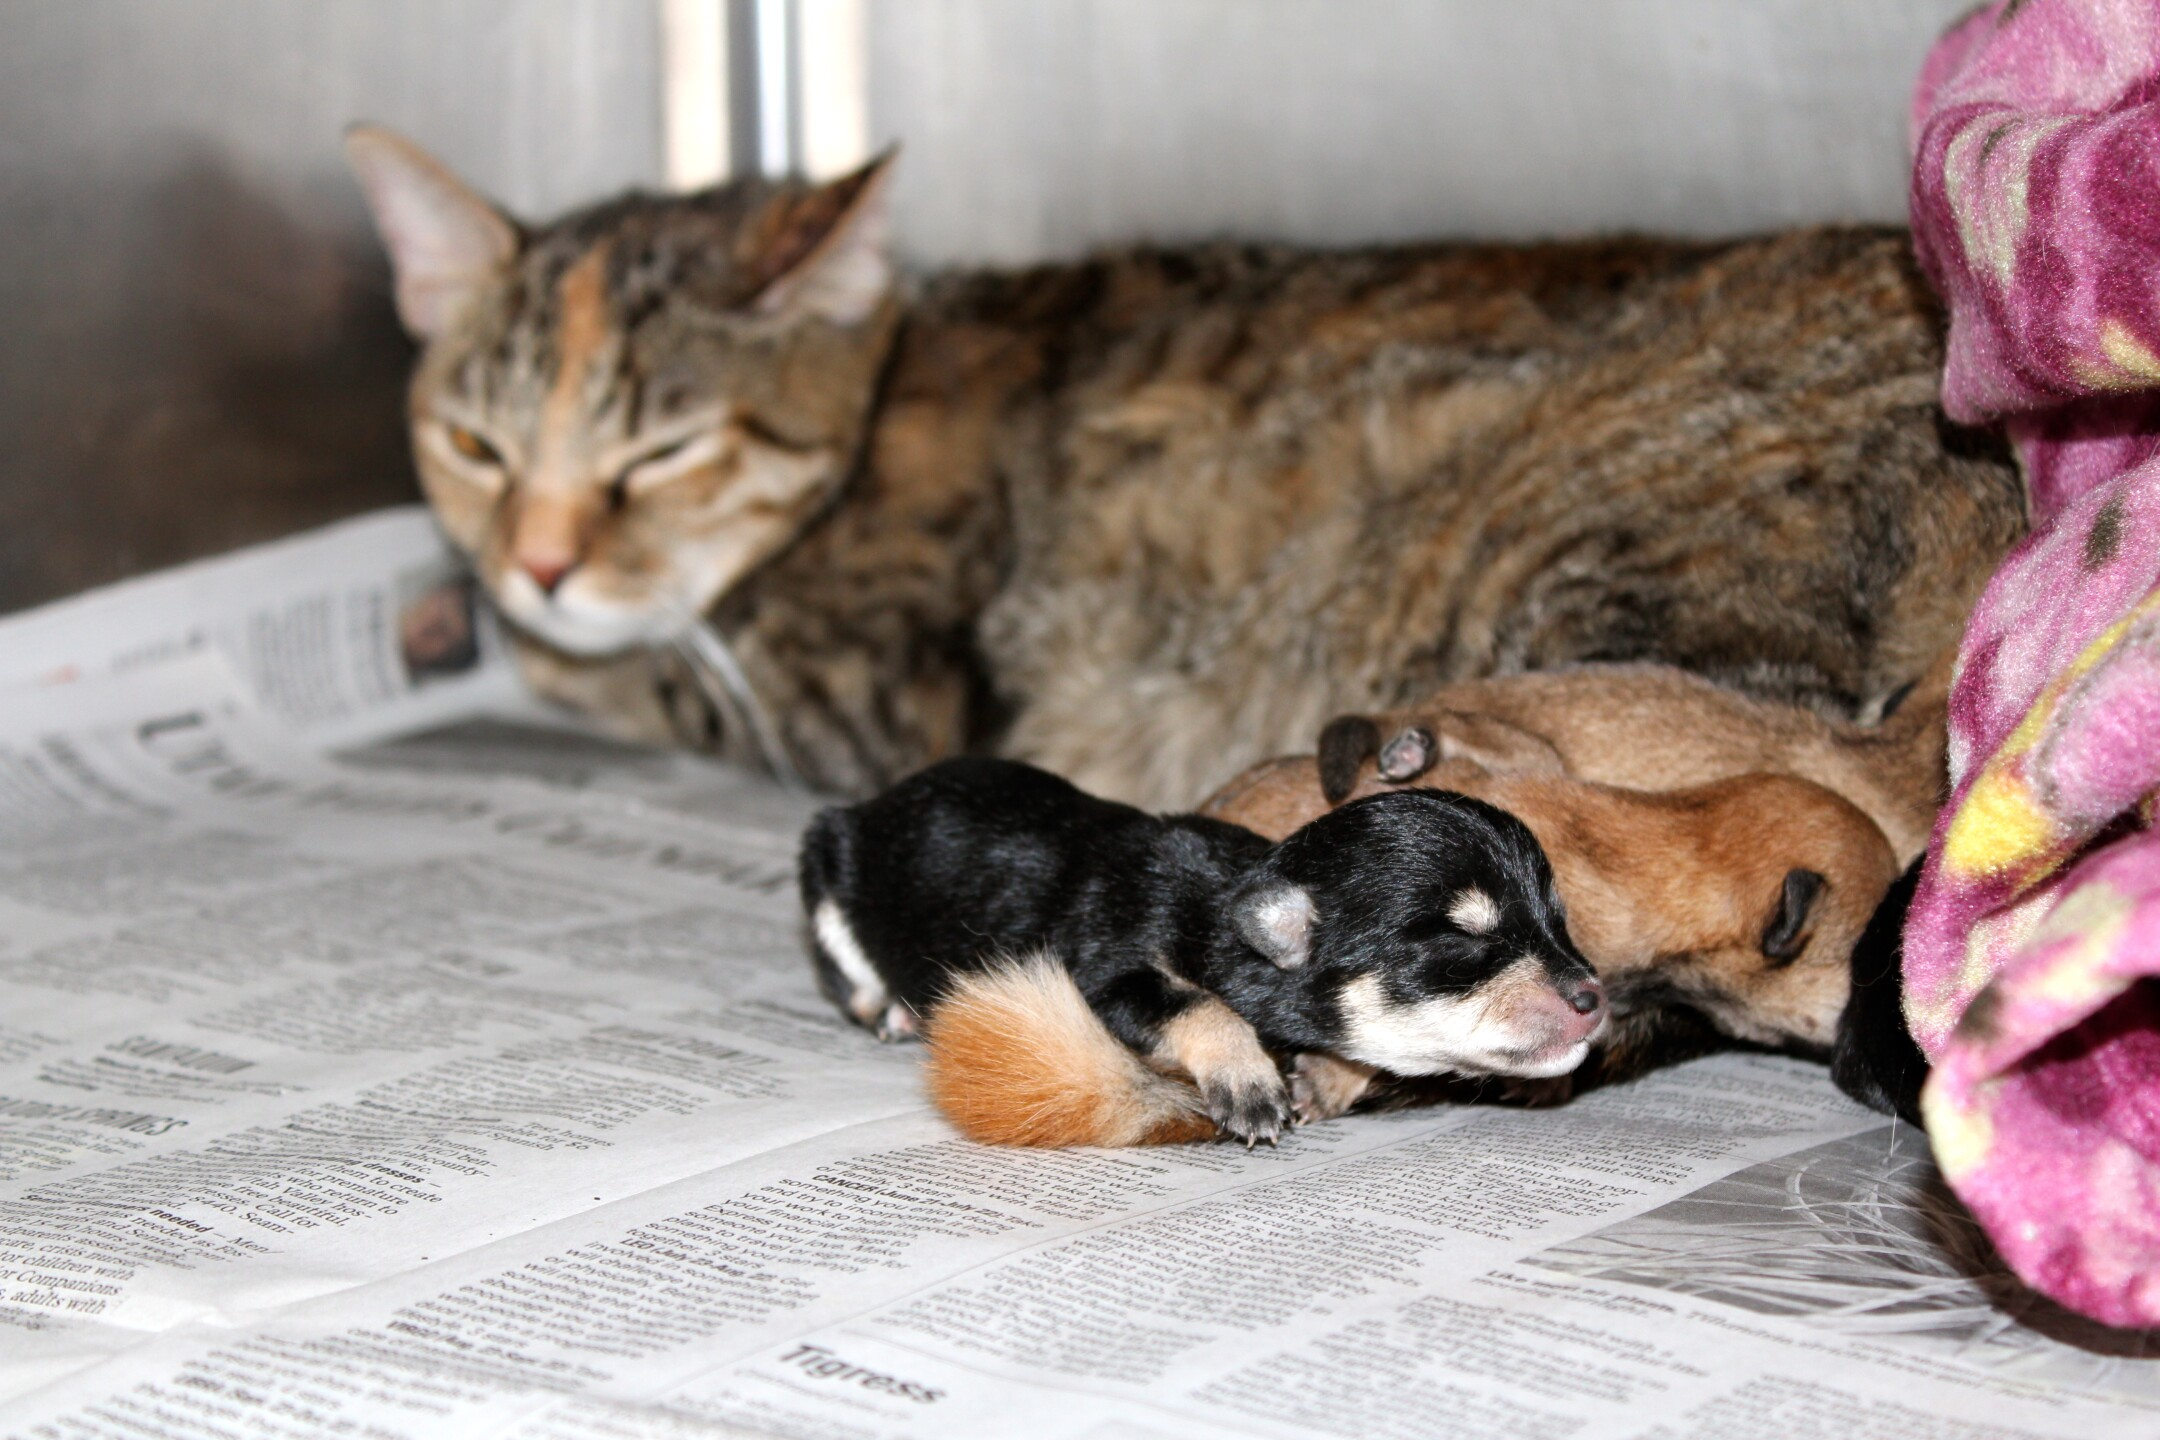 Photos: 4 newborn pups nursed by mama cat now beingbottle-fed